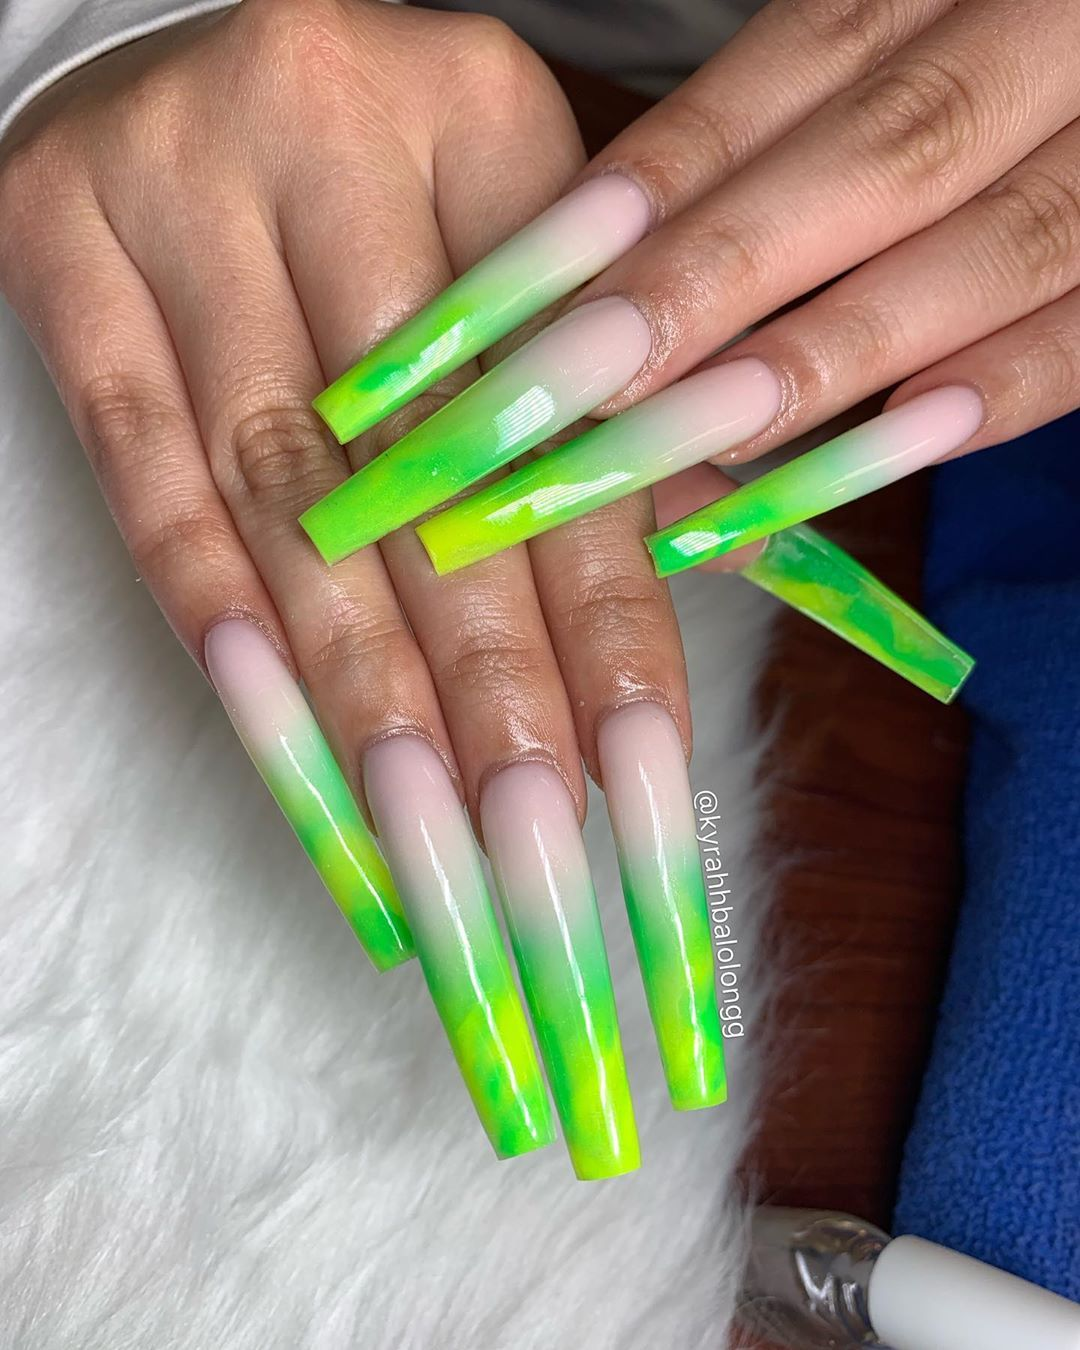 K Y R A H Brentwood Ca On Instagram Long Neon Green Neon Yellow Ombre Set Valentinobea Neon Green Nails Neon Acrylic Nails Green Acrylic Nails